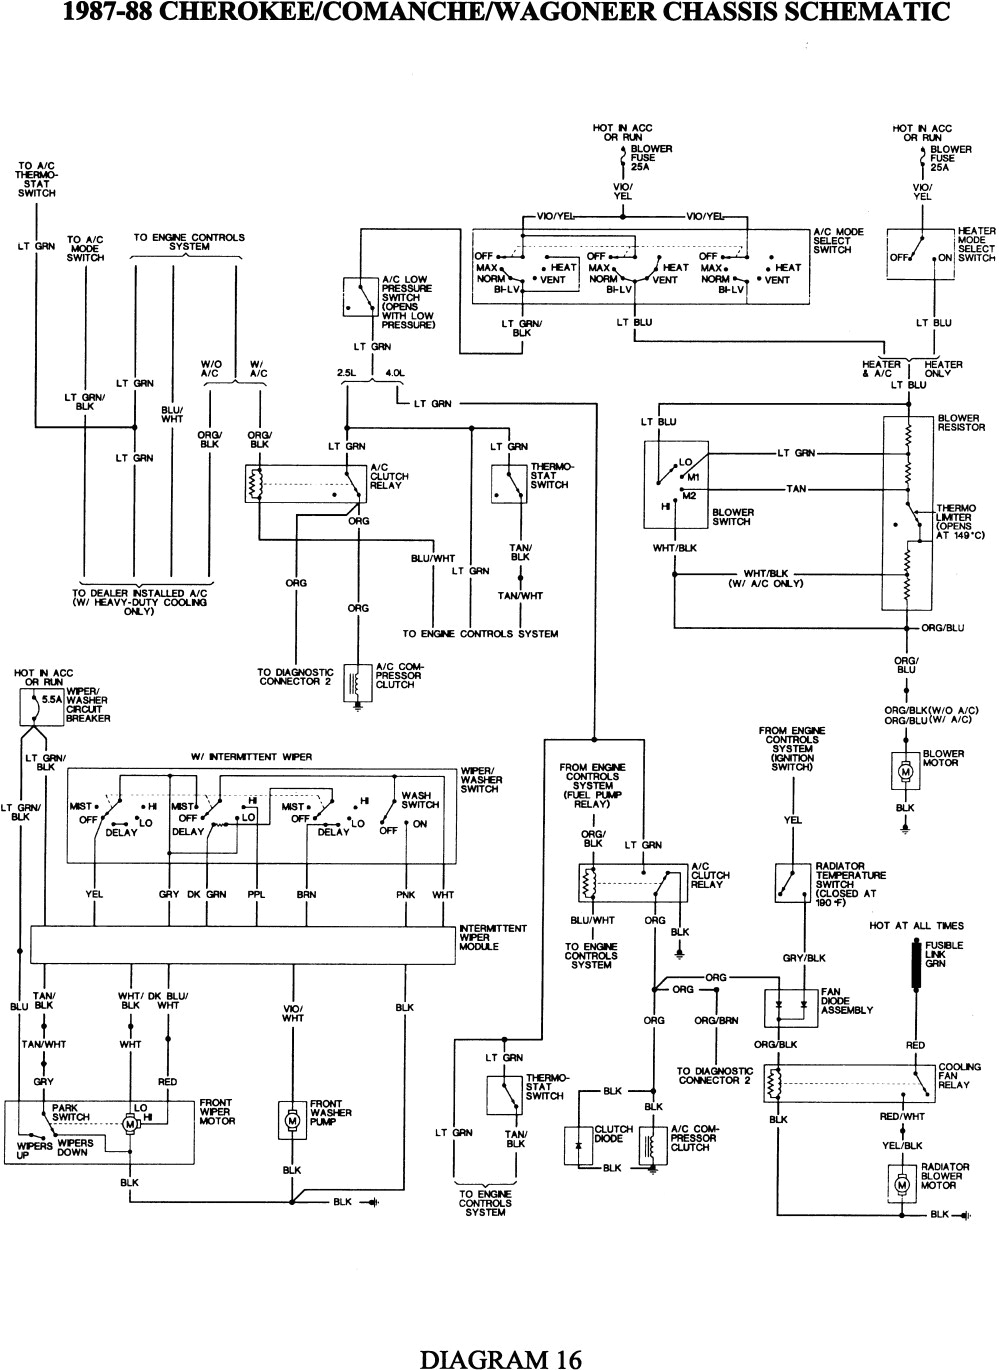 2000 jeep cherokee sport wiring diagram lovely 98 jeep grand cherokee wiring harness diagram smart wiring diagrams e280a2 jpg